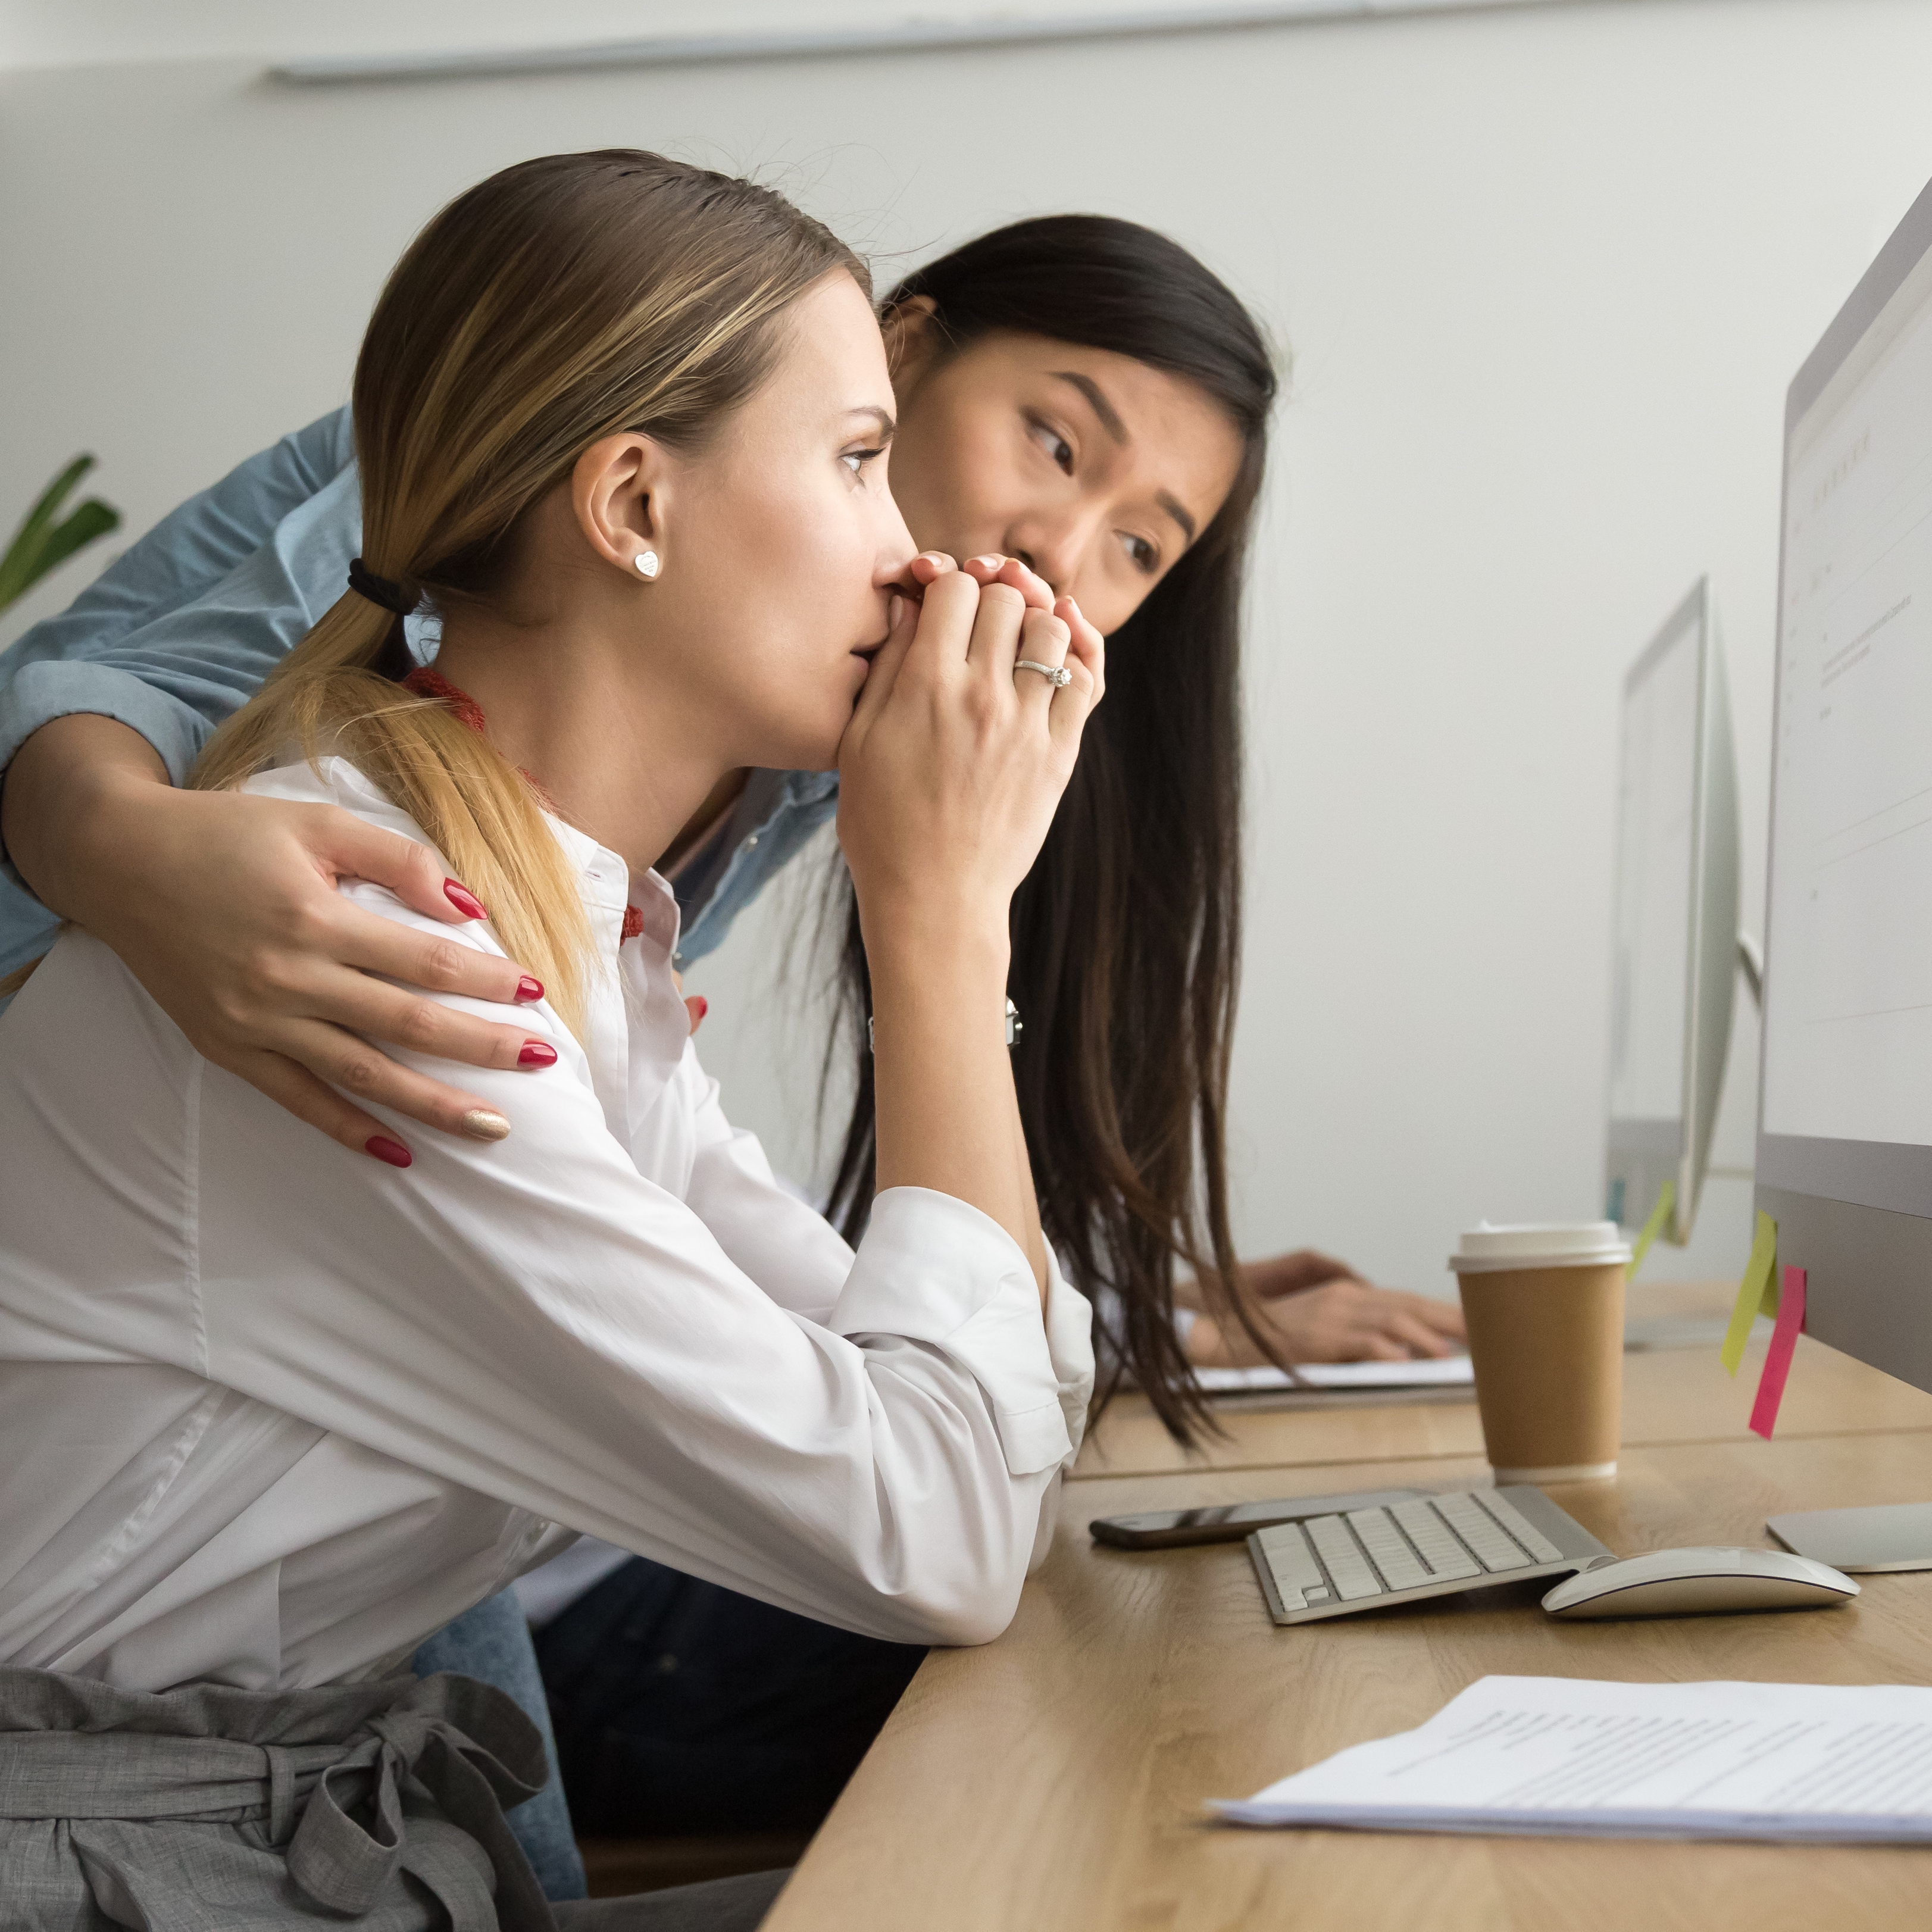 two young women in an office, one looking stressed and the other comforting her.